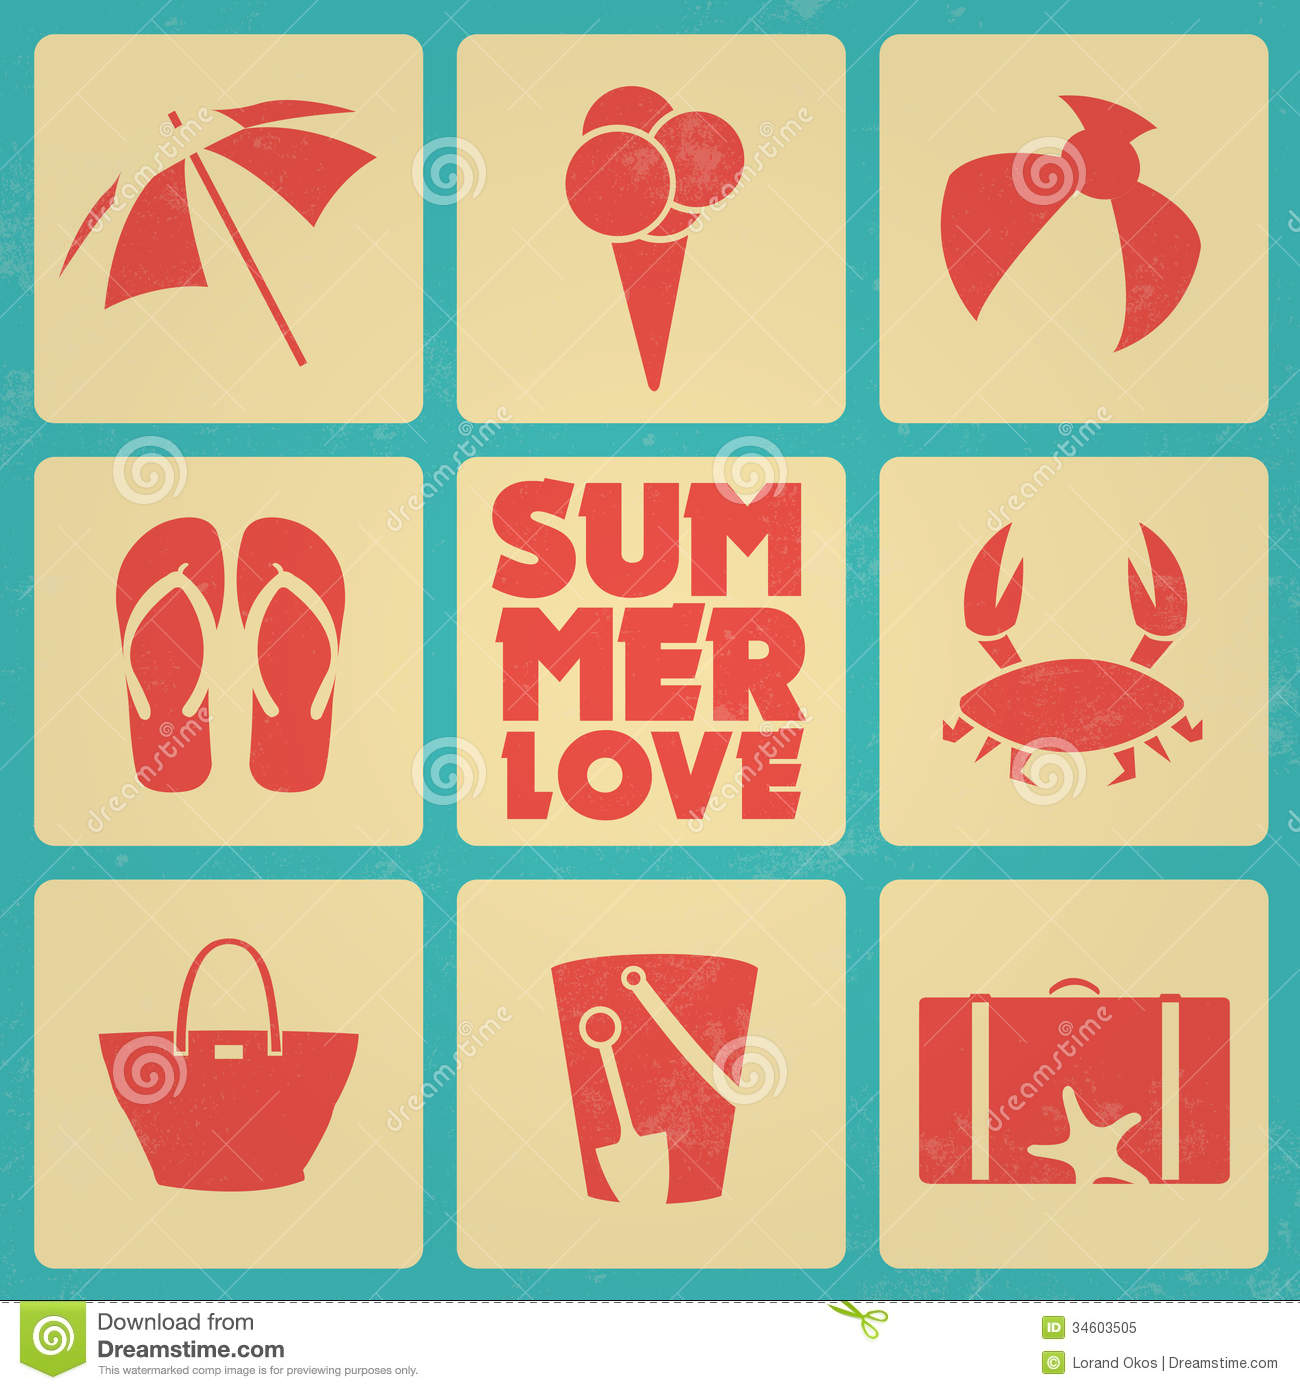 Retro Beach Illustration Royalty Free Stock Photo: Vintage Summer Poster With Icons